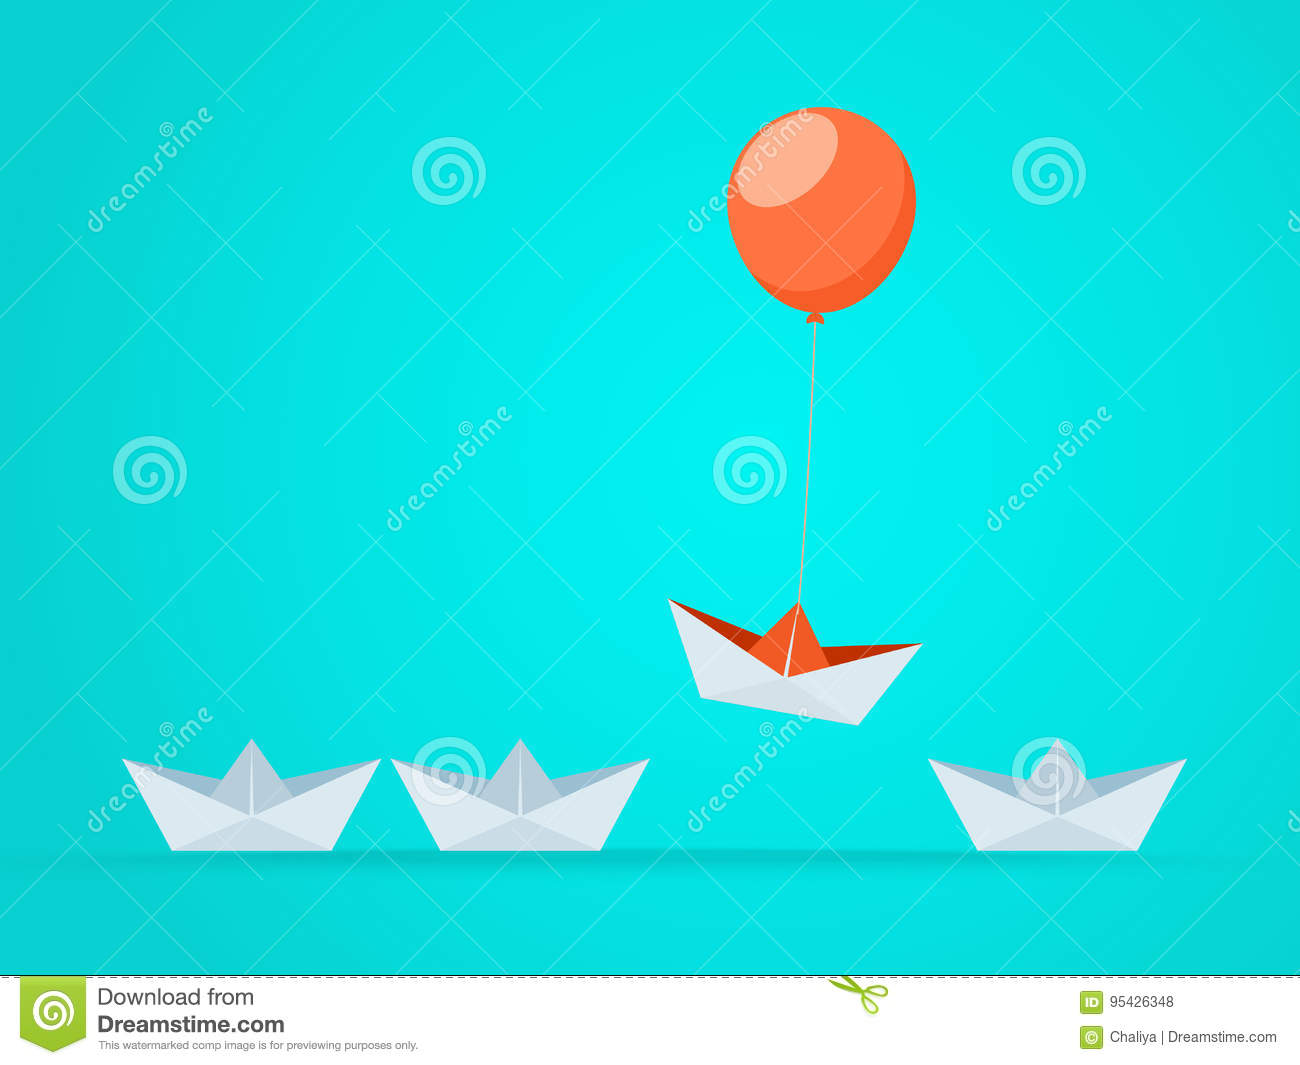 Outstanding the Boat rises above with balloon. Business advantage opportunities and success concept.